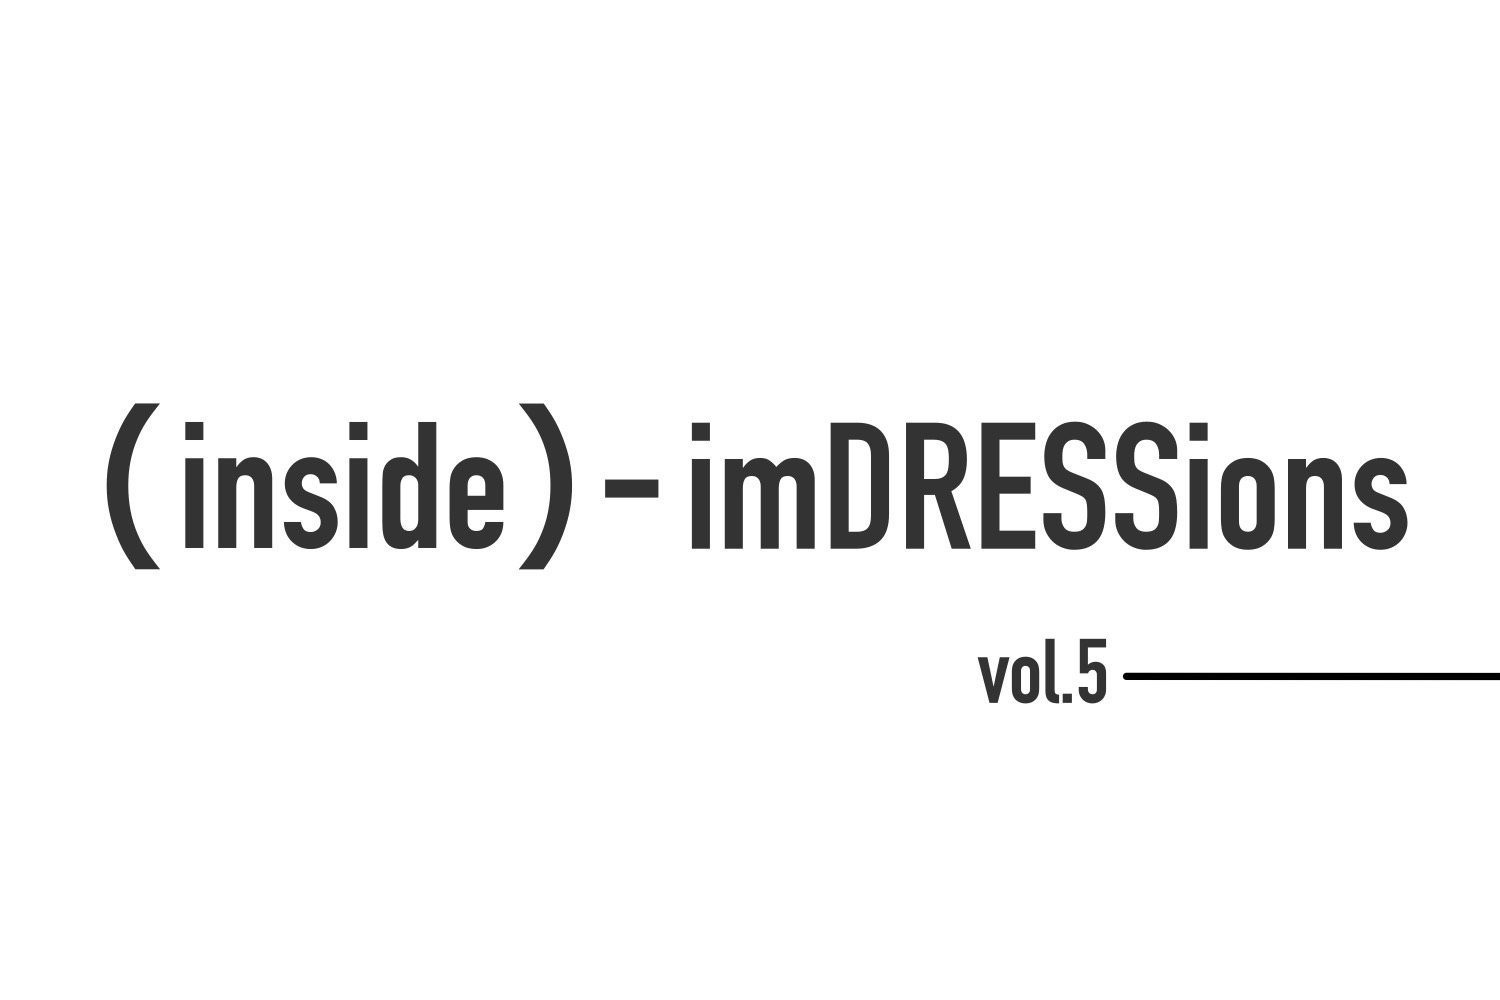 『(inside) – imDRESSions』vol.5